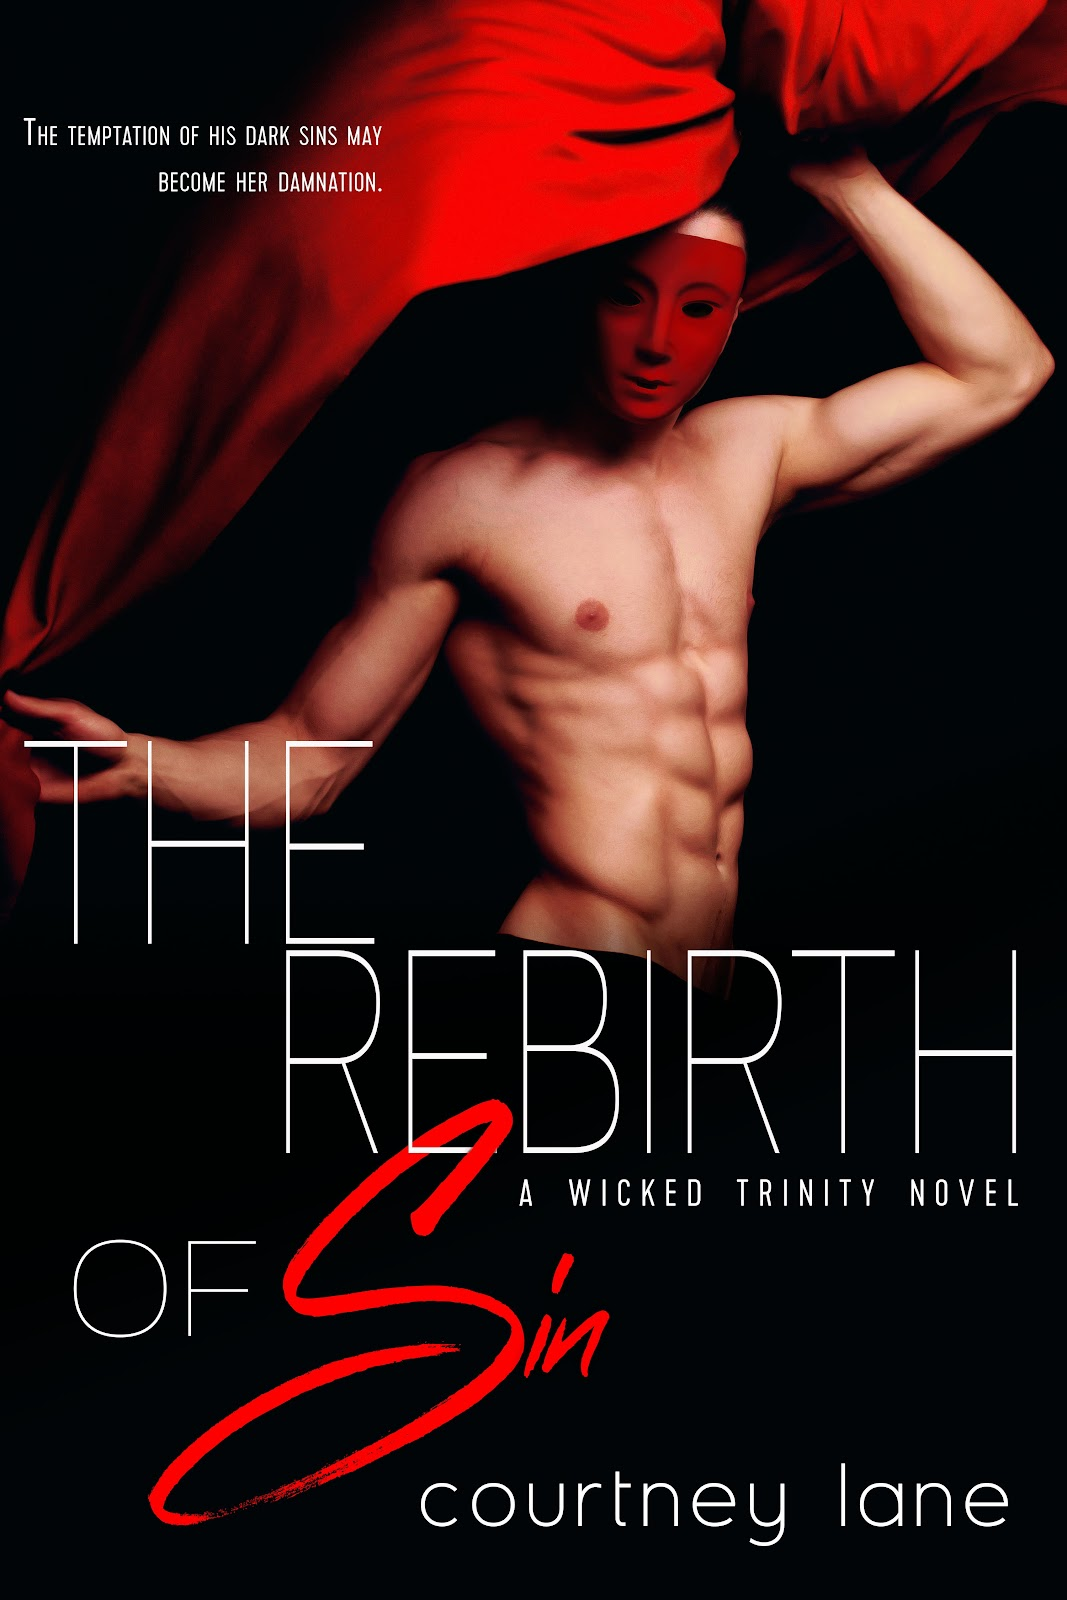 Rebirth book cover.jpg